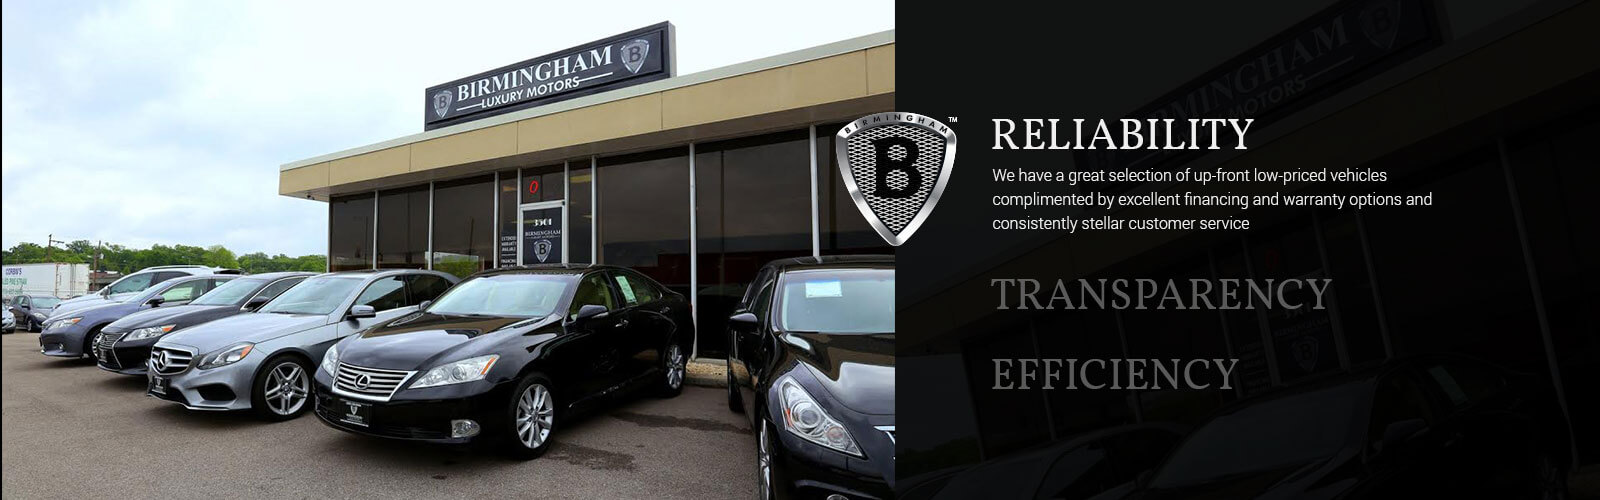 fe5b9dd01c Birmingham Luxury Motors